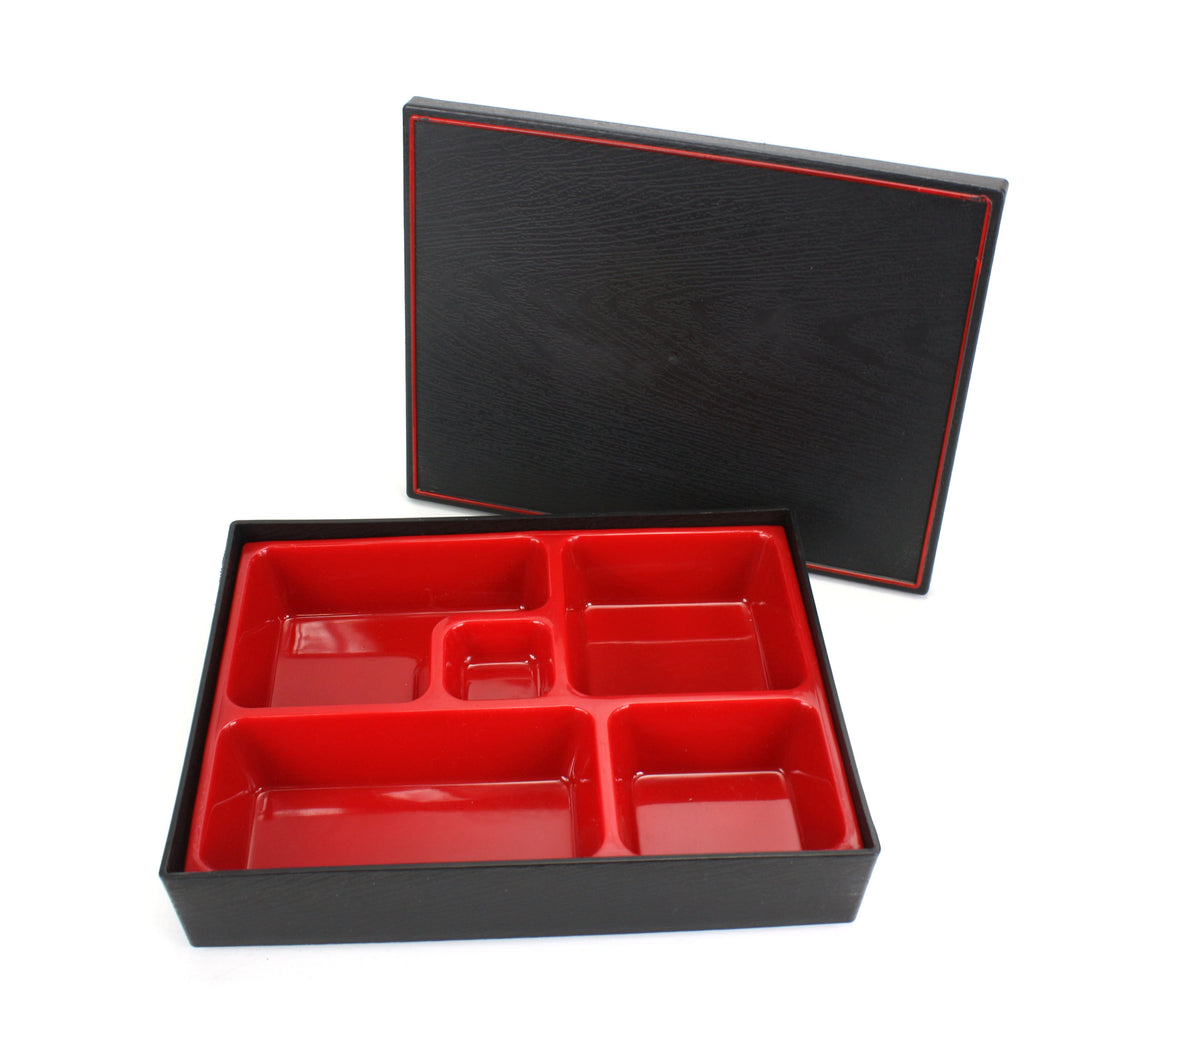 Japanese style Bento Box, Restaurant style with lid, 26.8cm x 20.7cm - farangshop-co